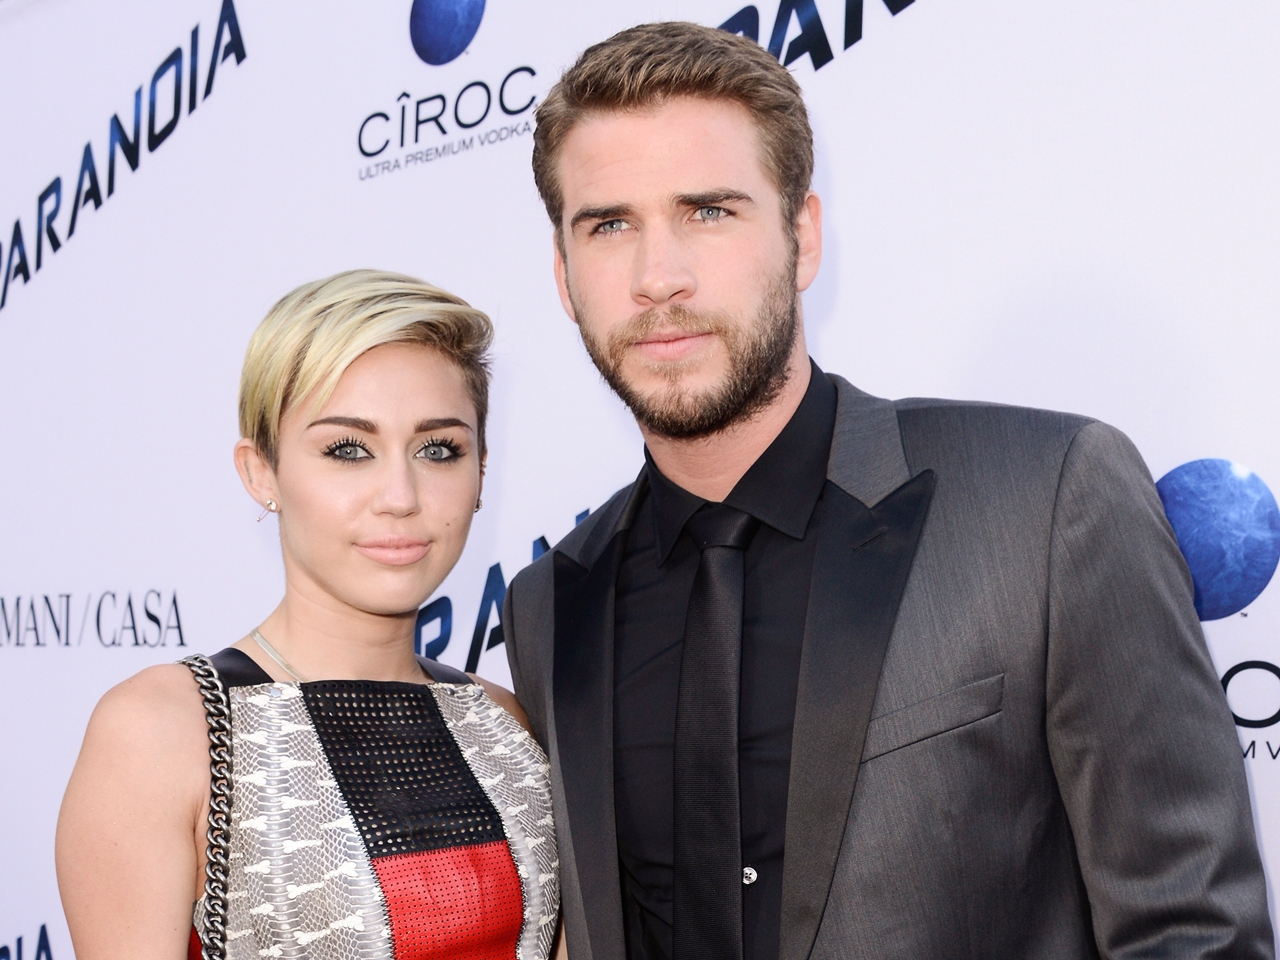 Image: Miley Cyrus and Liam Hemsworth